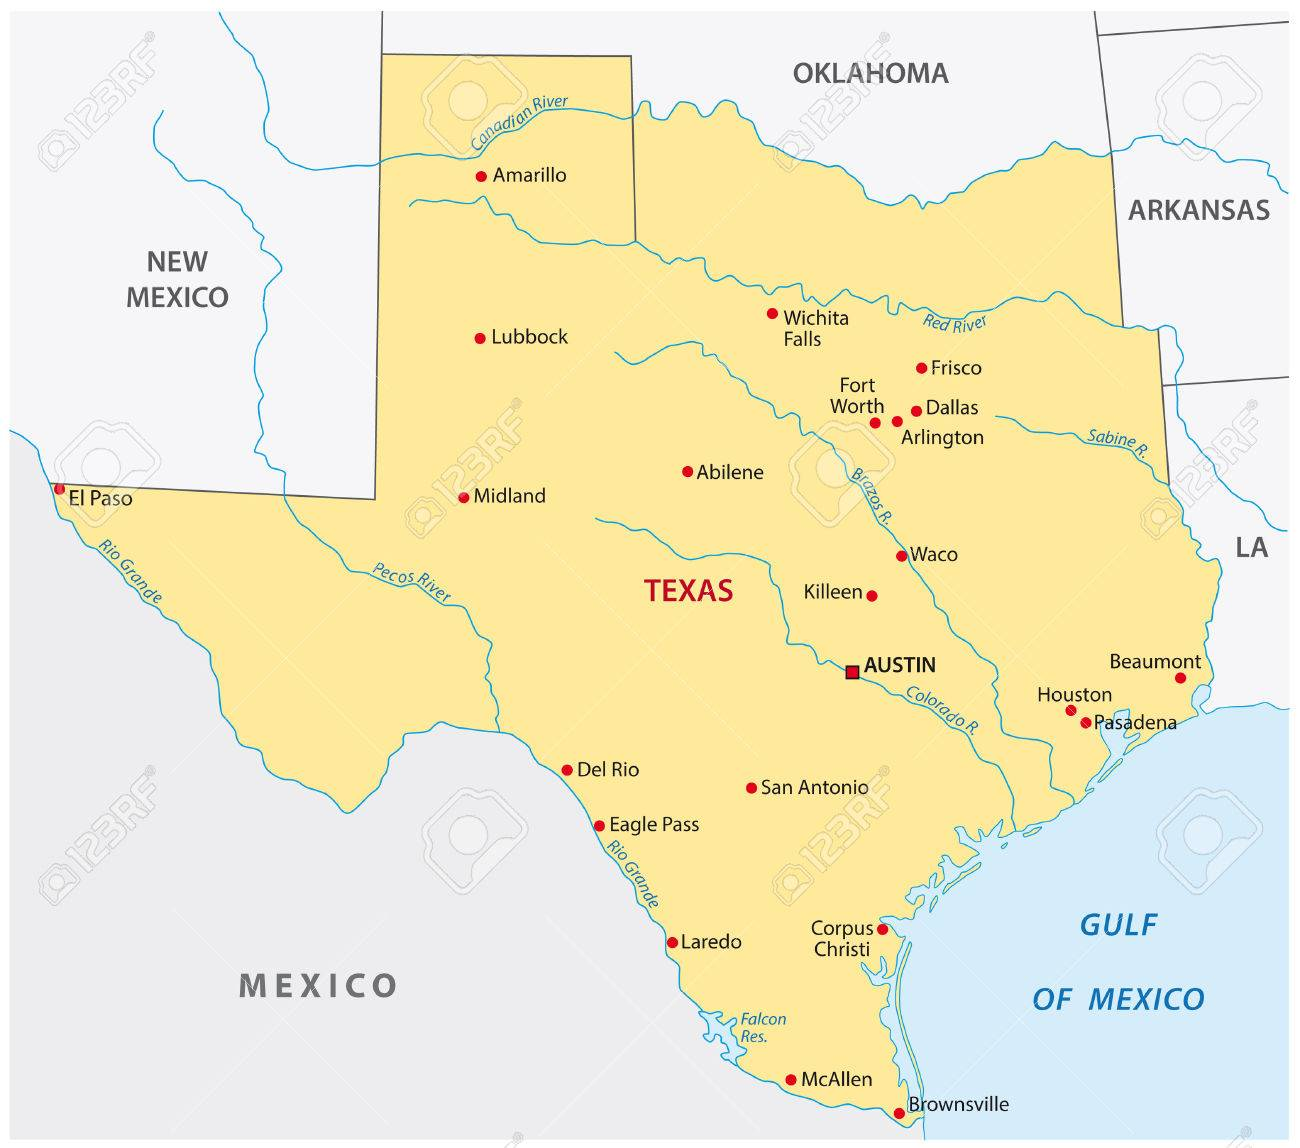 Simple Texas State Map Royalty Free Cliparts, Vectors, And Stock